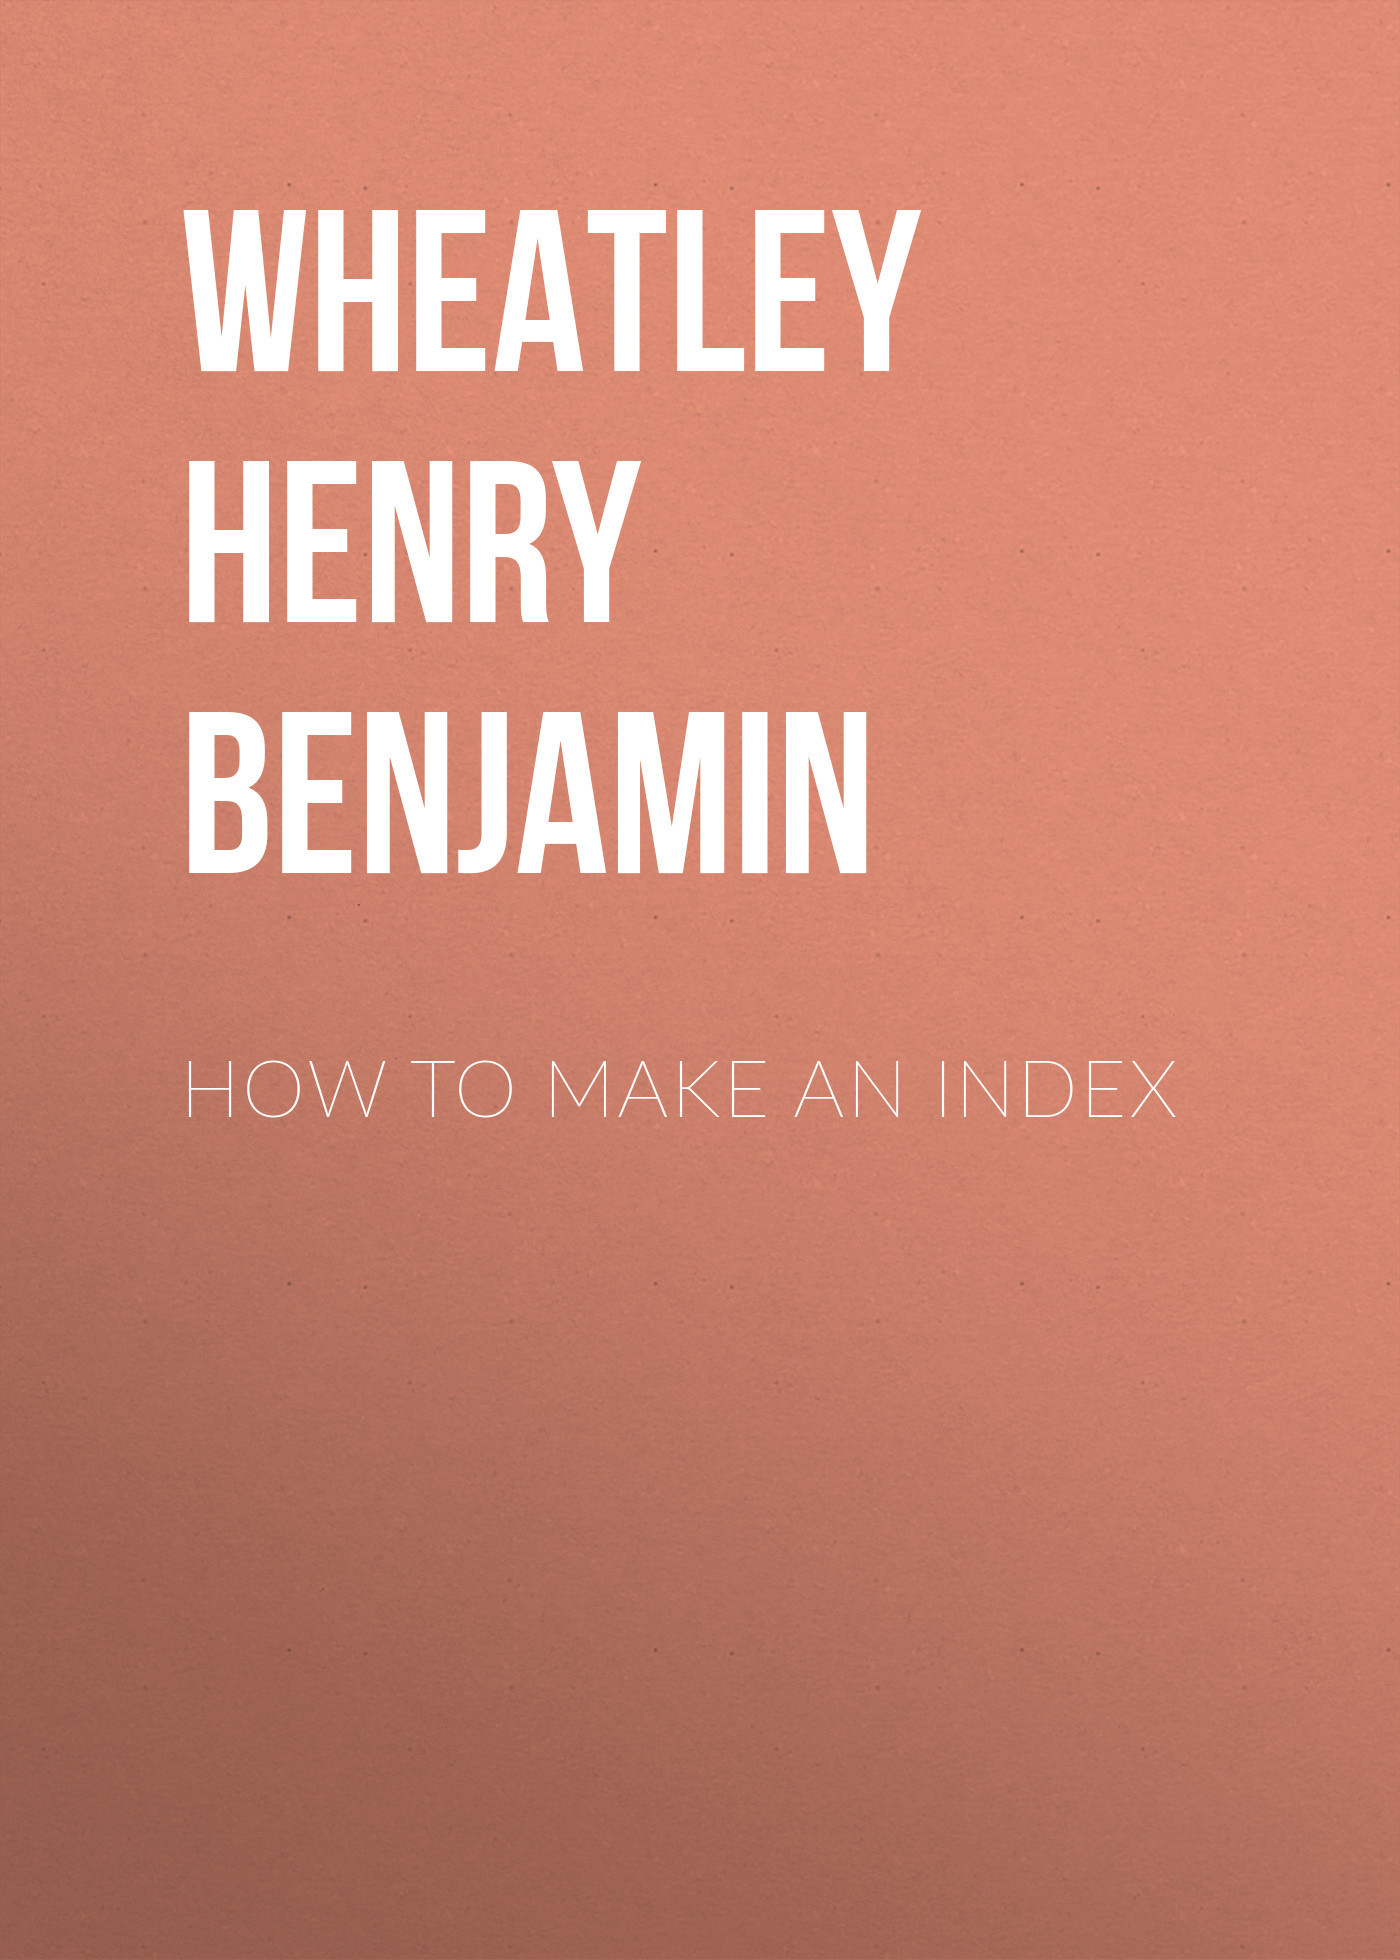 Wheatley Henry Benjamin How to Make an Index wheatley henry benjamin prices of books